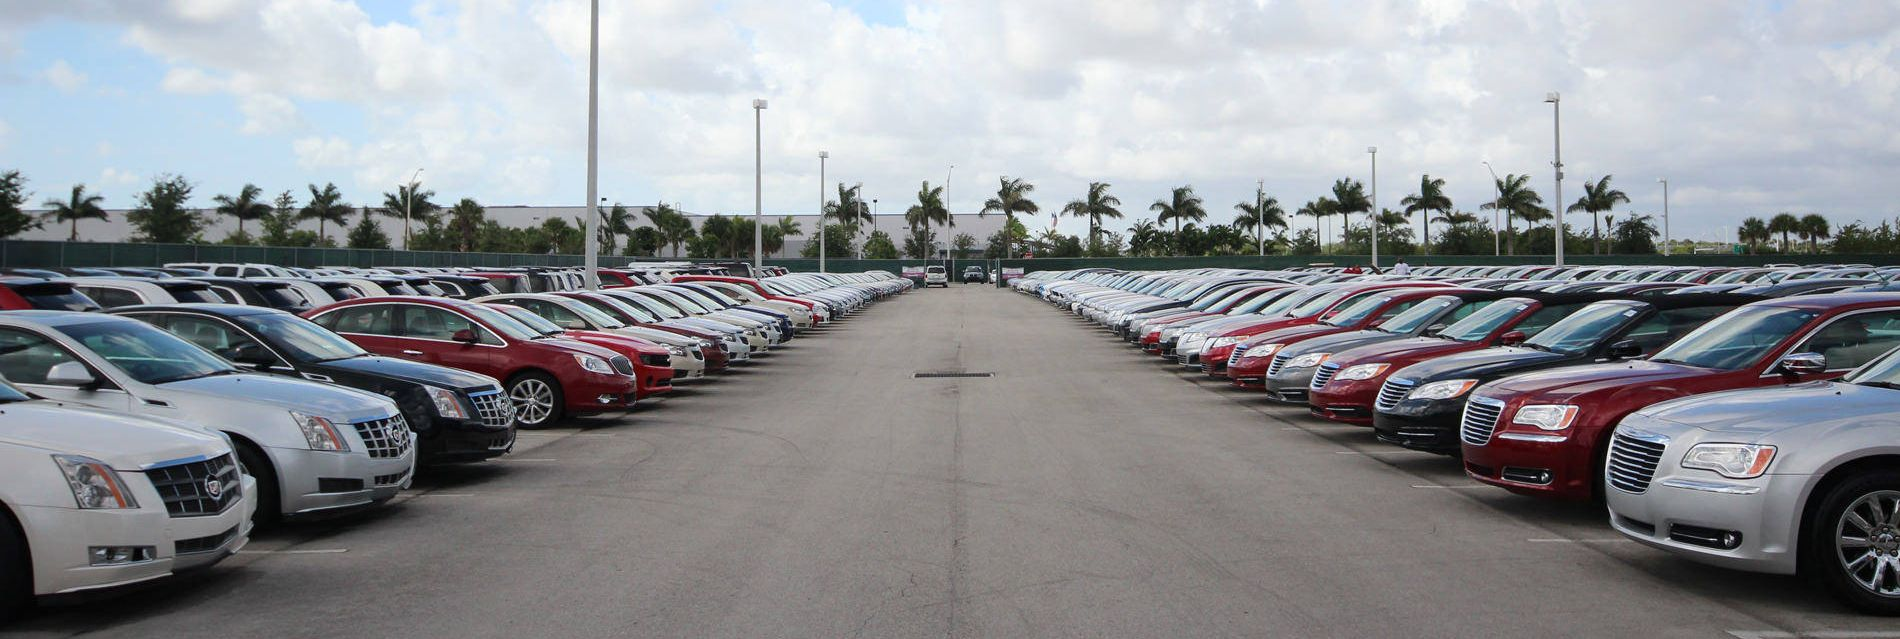 bank owned cars for sale - 1900×639